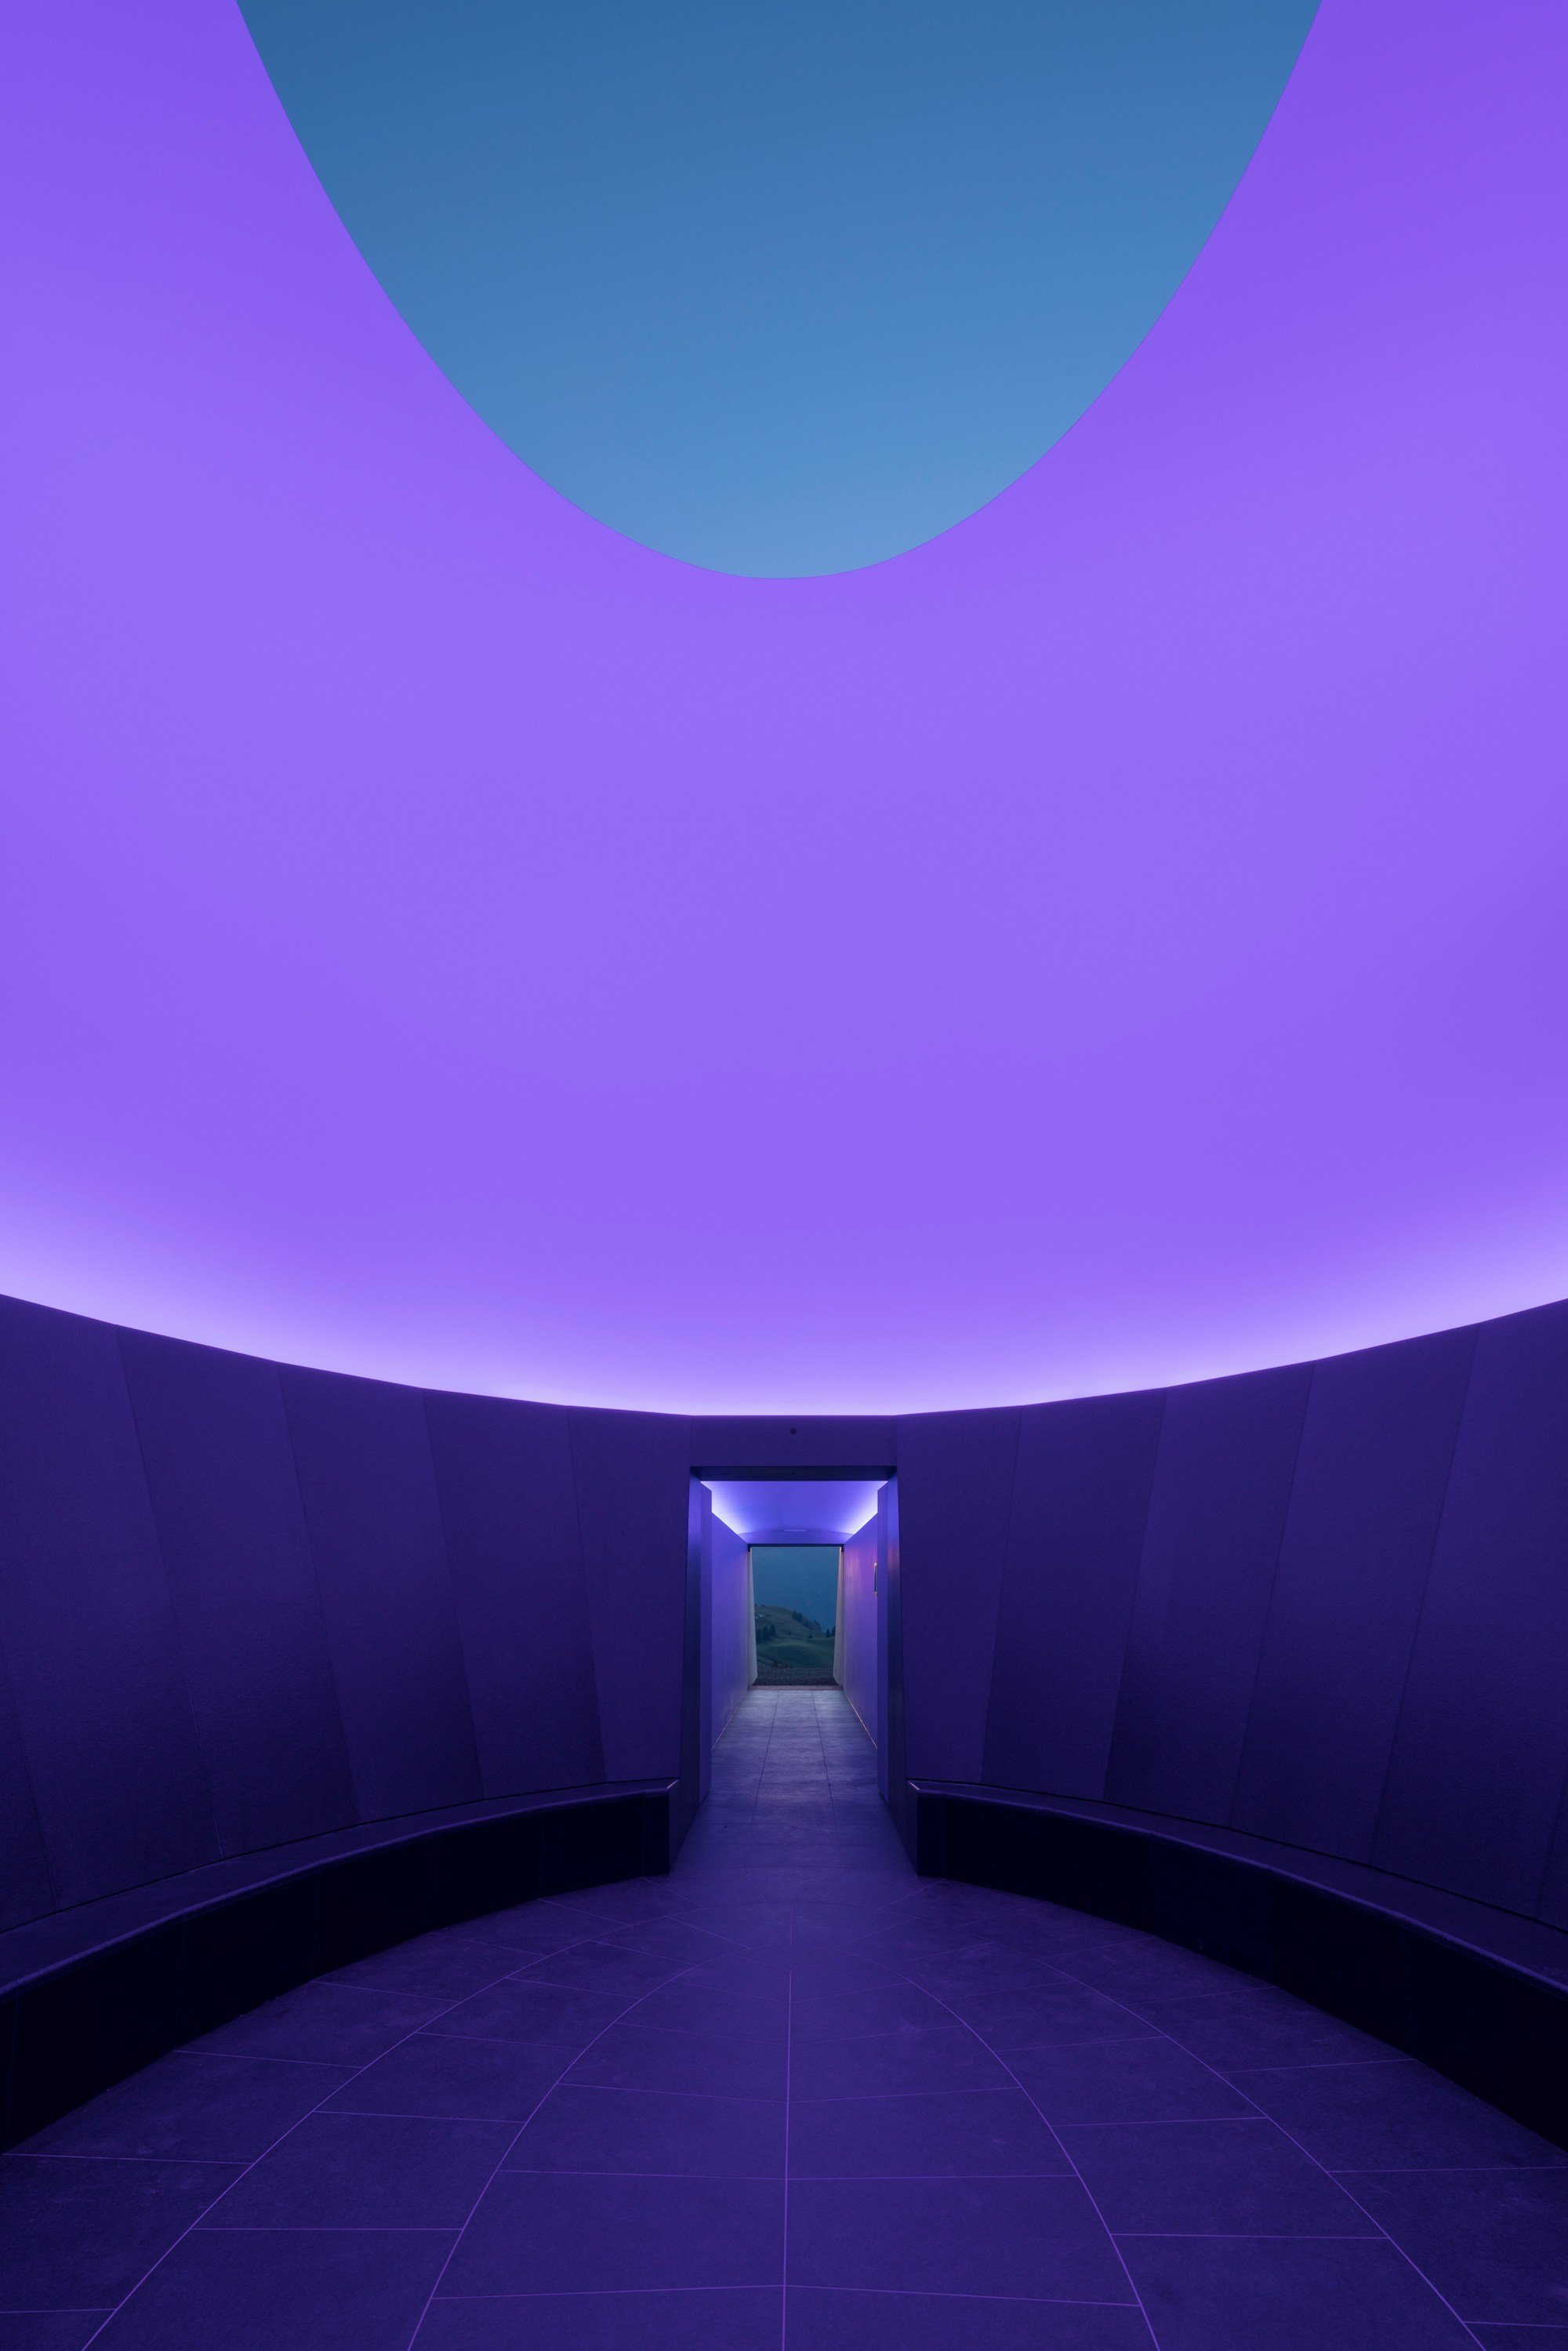 IGNANT-Art-James-Turrell-Skyspace-Zumtobel-009